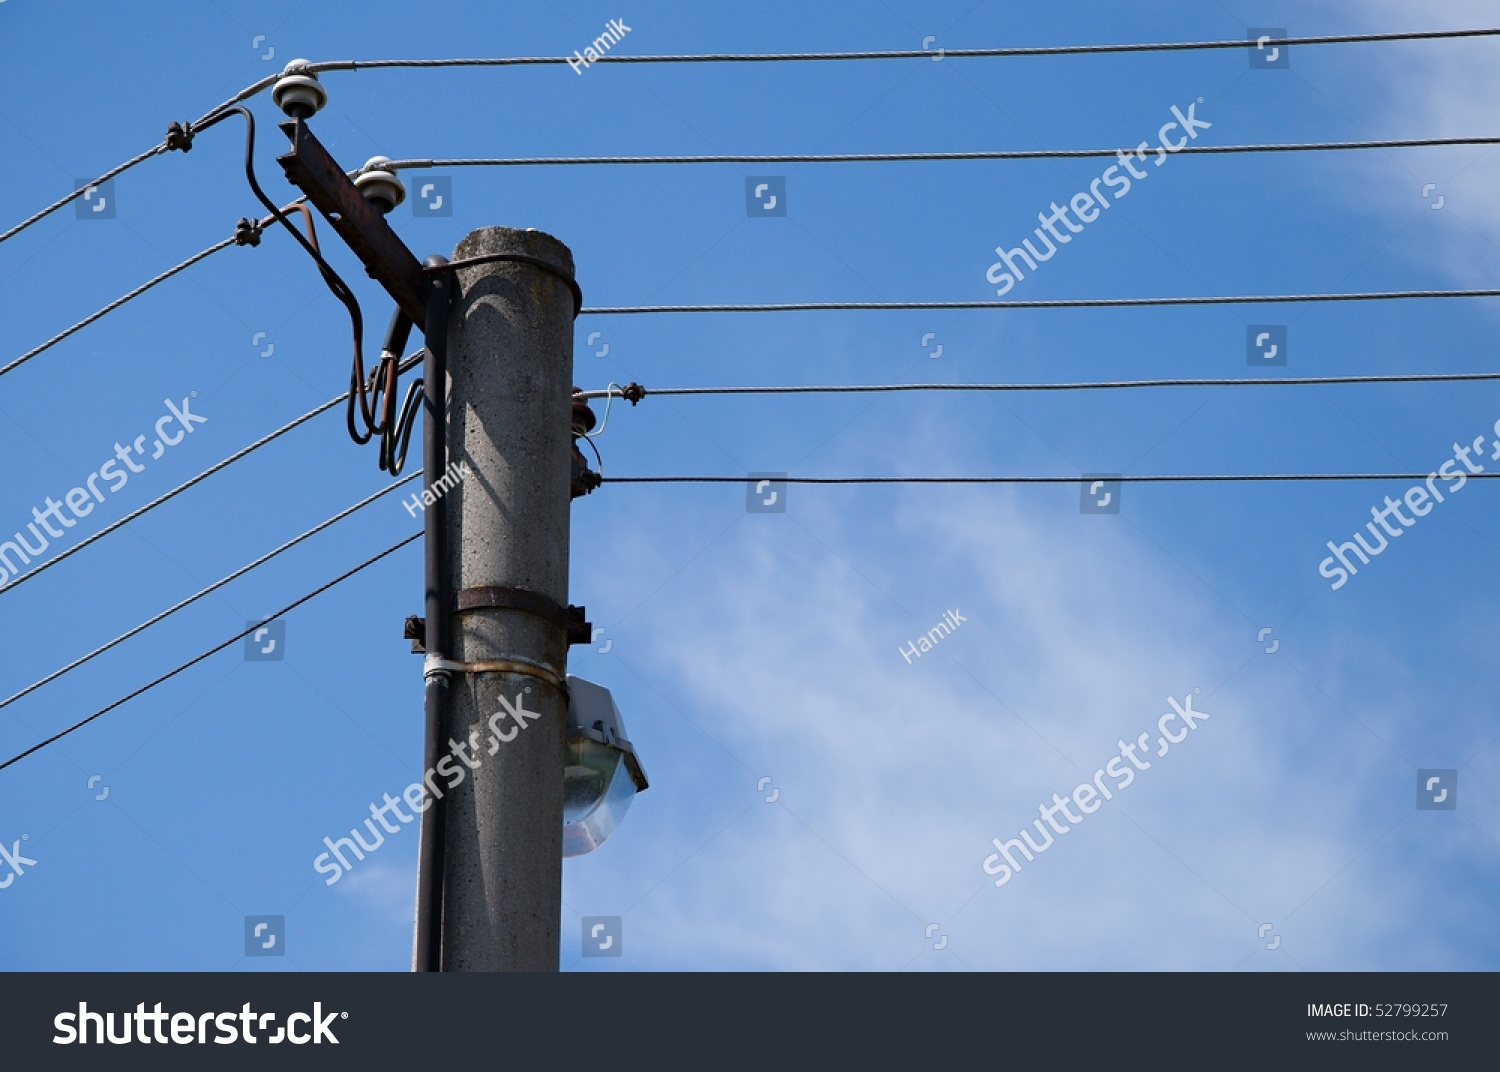 hight resolution of detail image of power pole with lamp